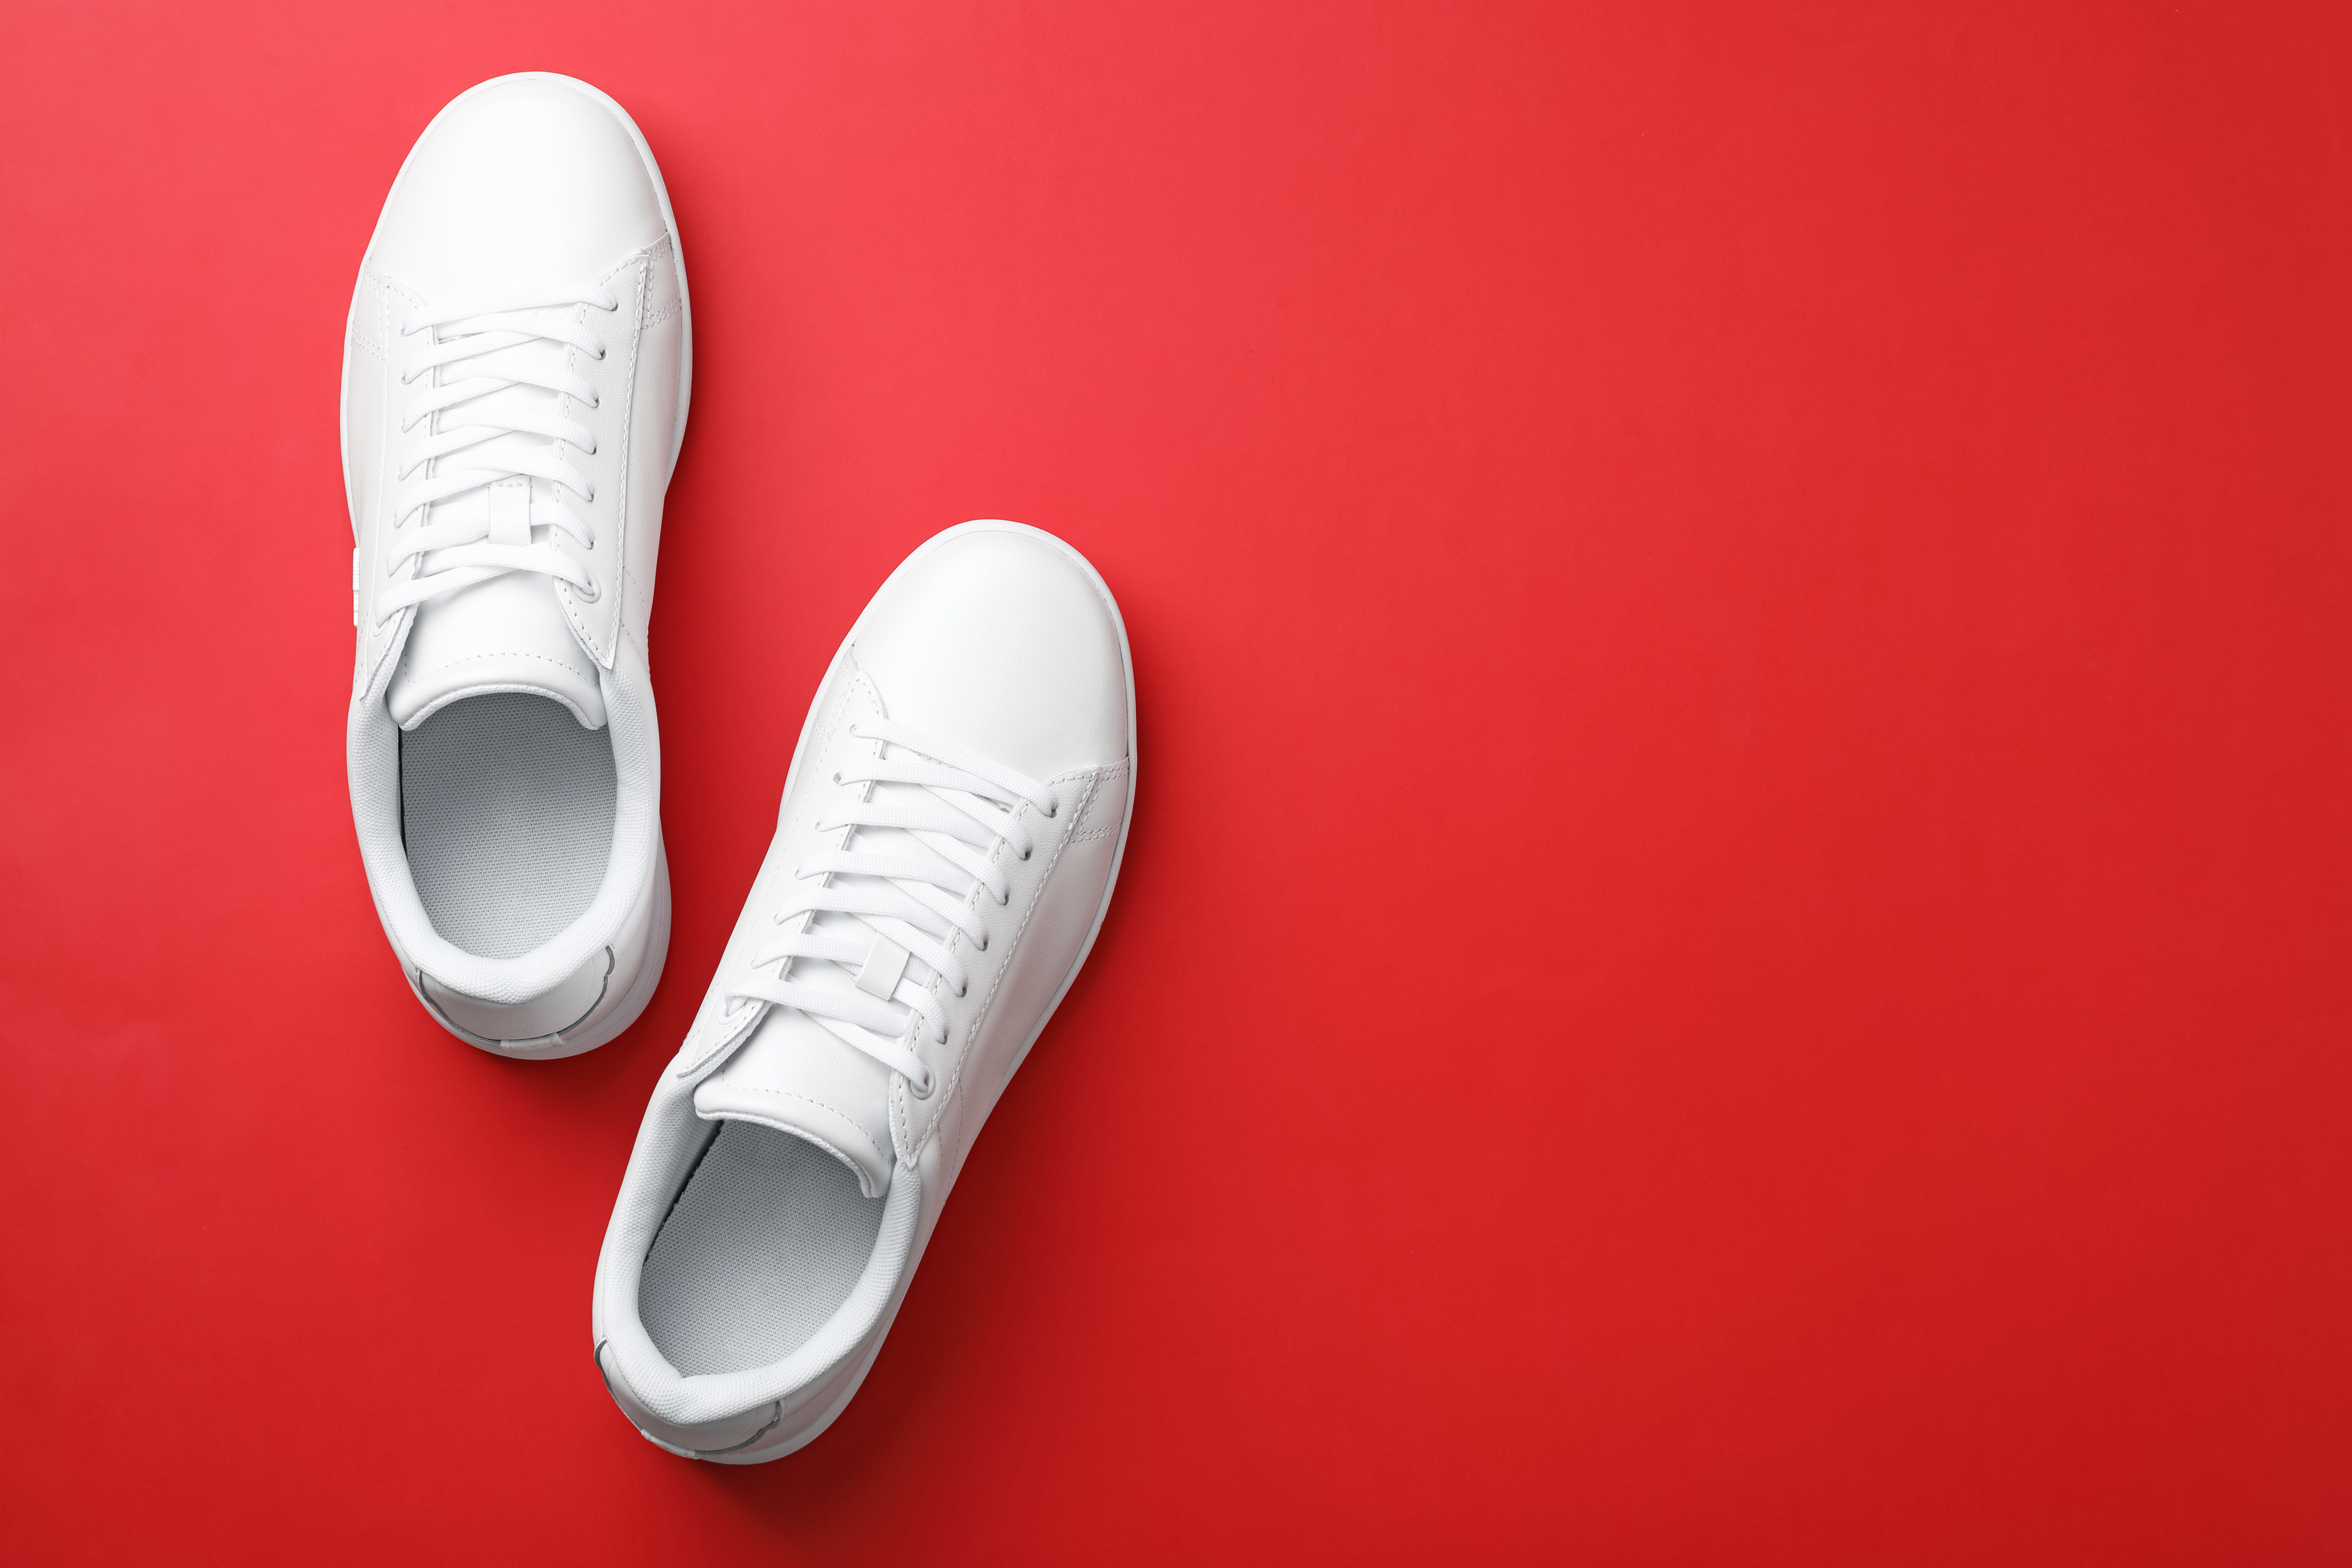 5 insights about brands in the athleisure footwear industry